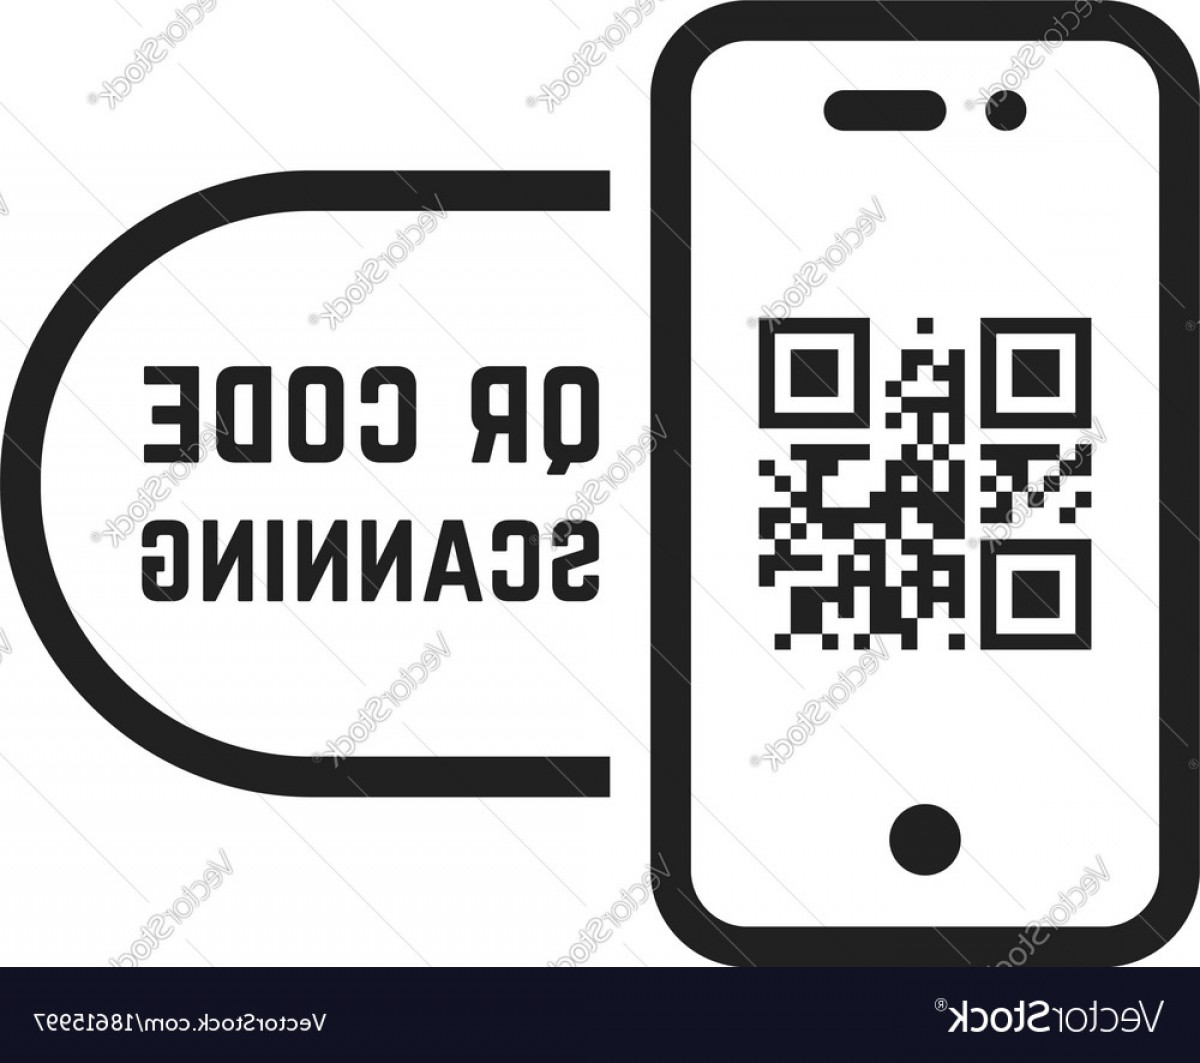 QR Mobile Phone Vector: Qr Code Scanning Like Linear Black Phone Vector